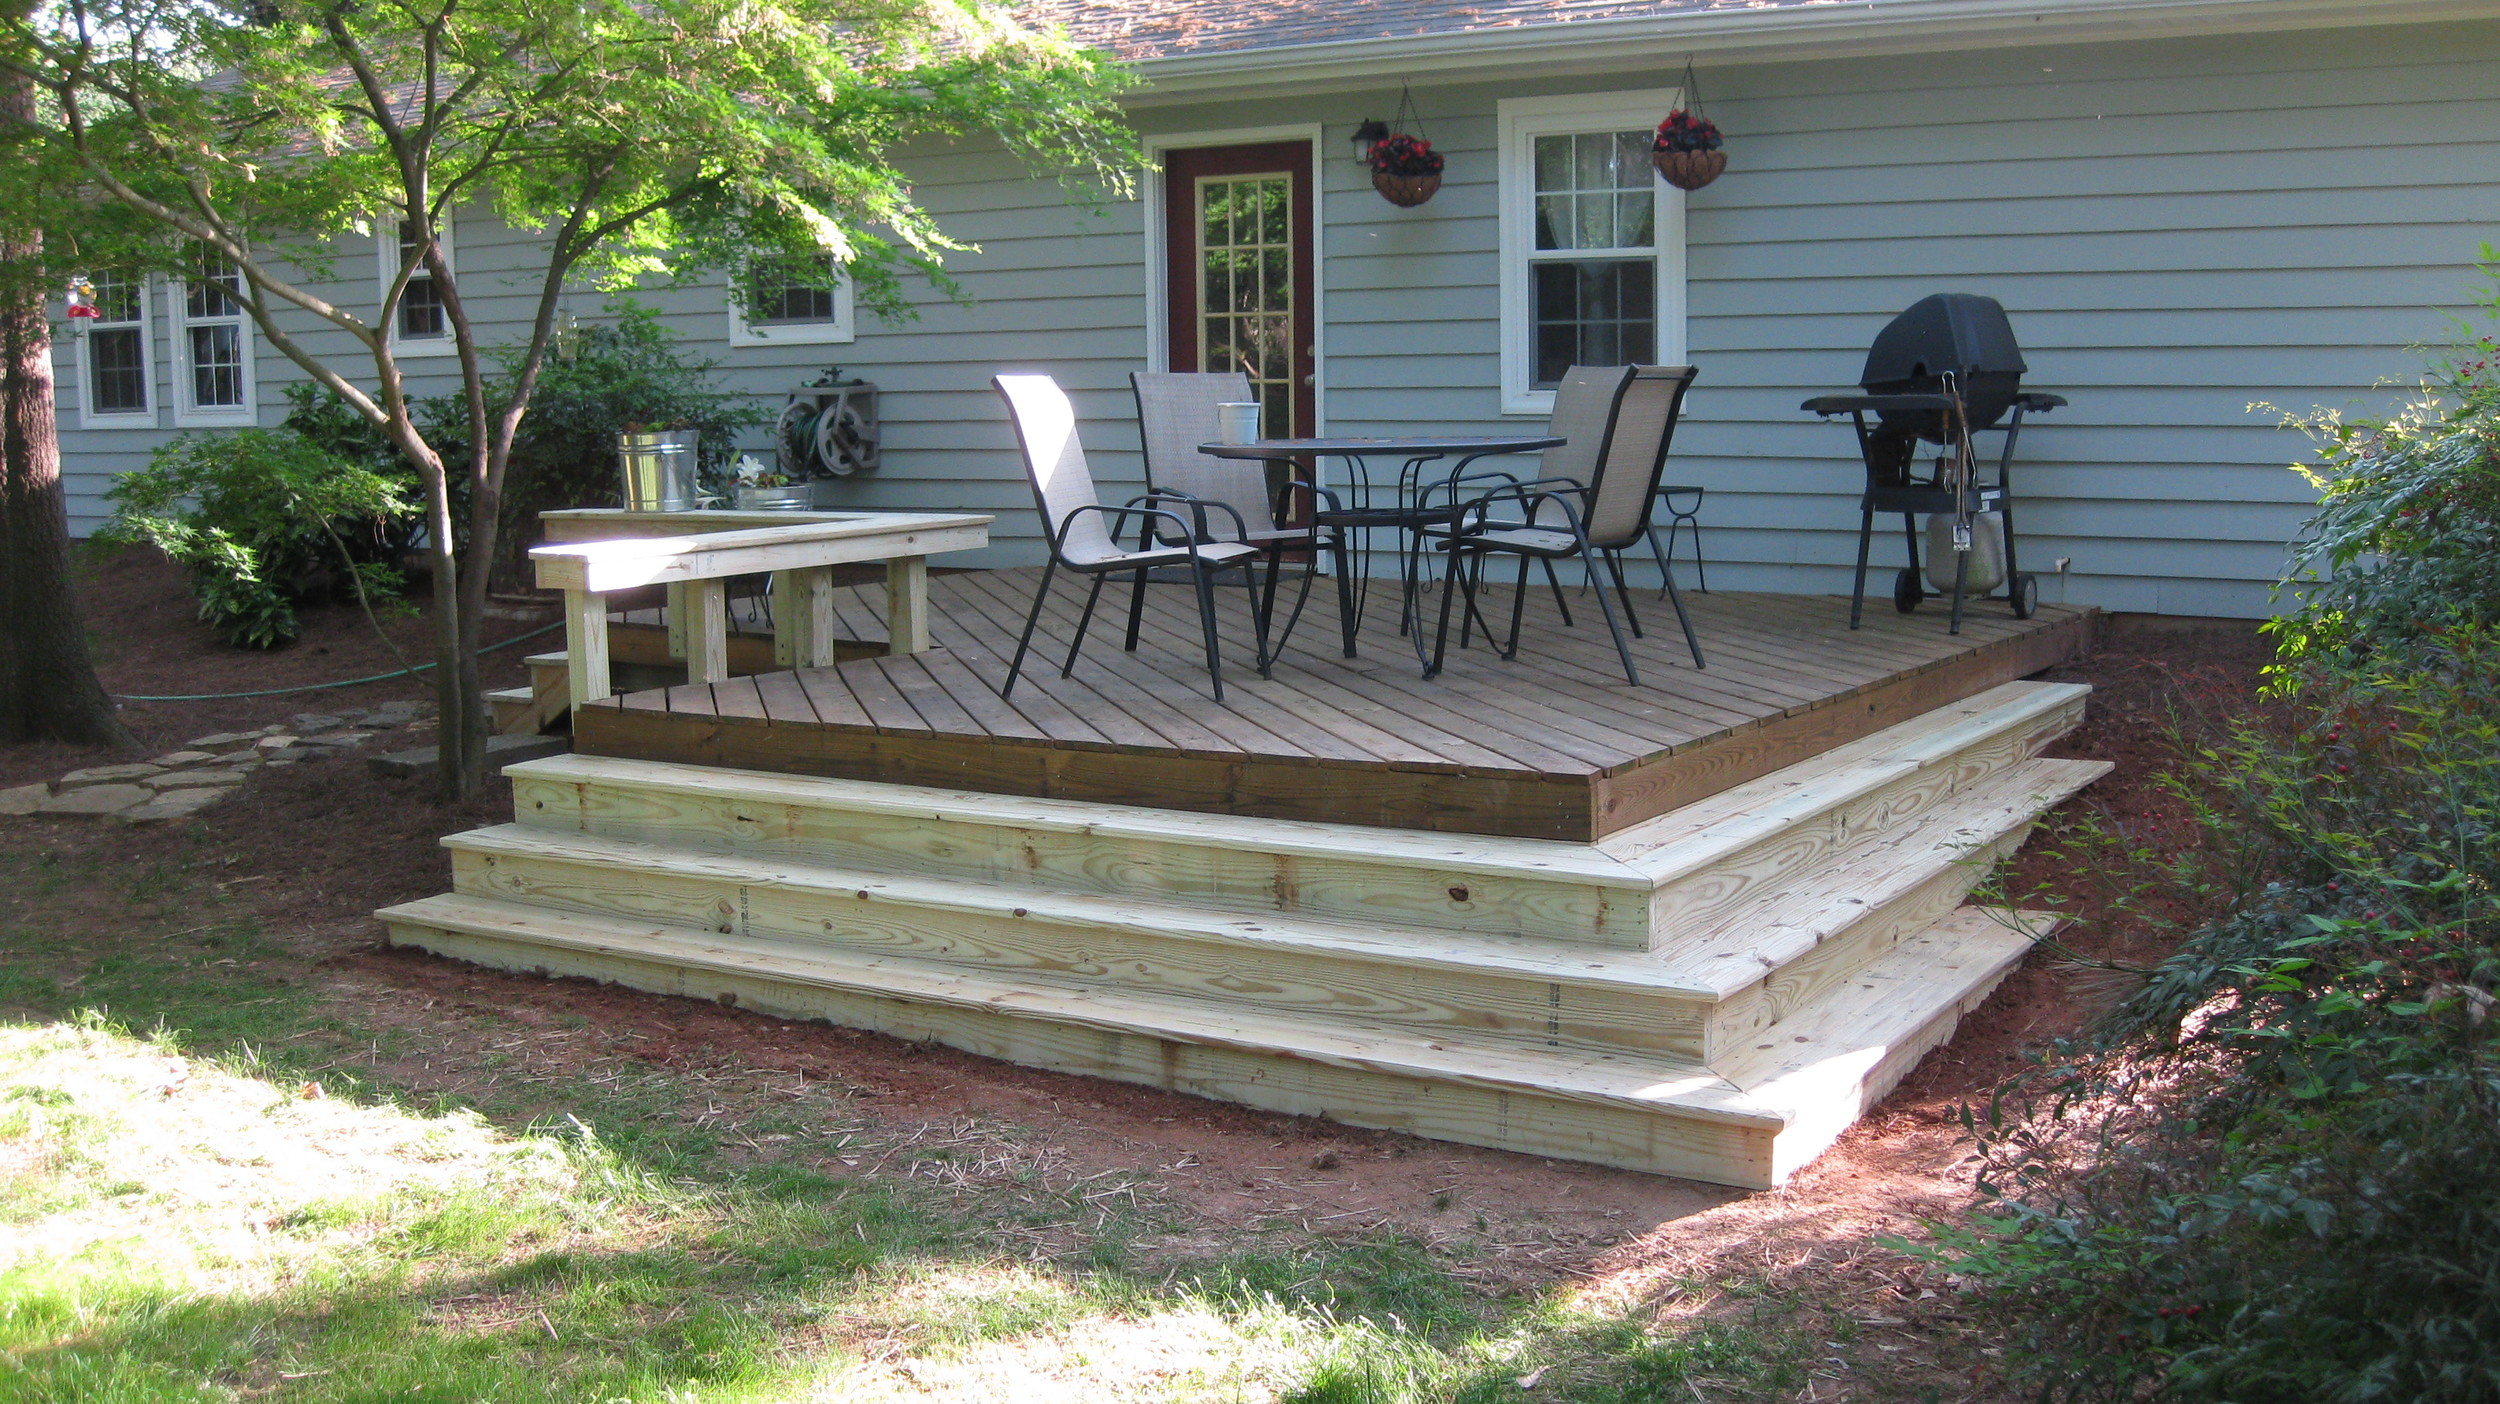 Steps and Bench on Existing Deck